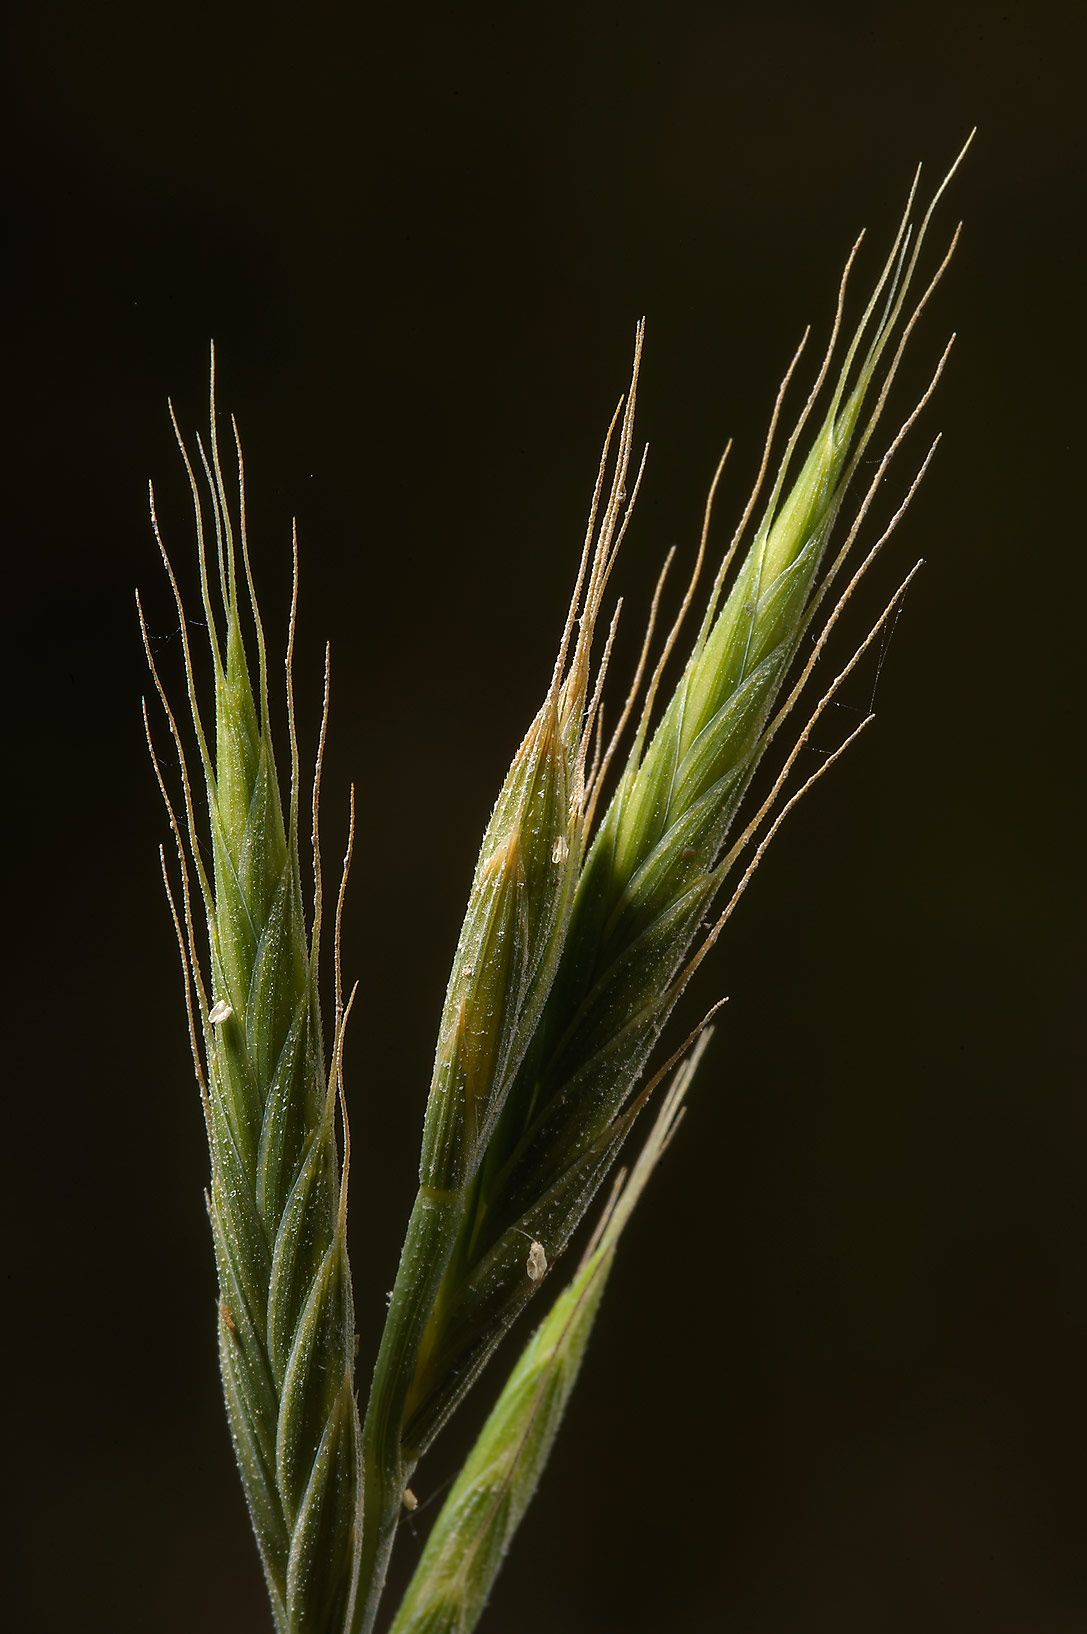 Spikelets of purple false brome grass...Thaghab Al Majda. North-western Qatar